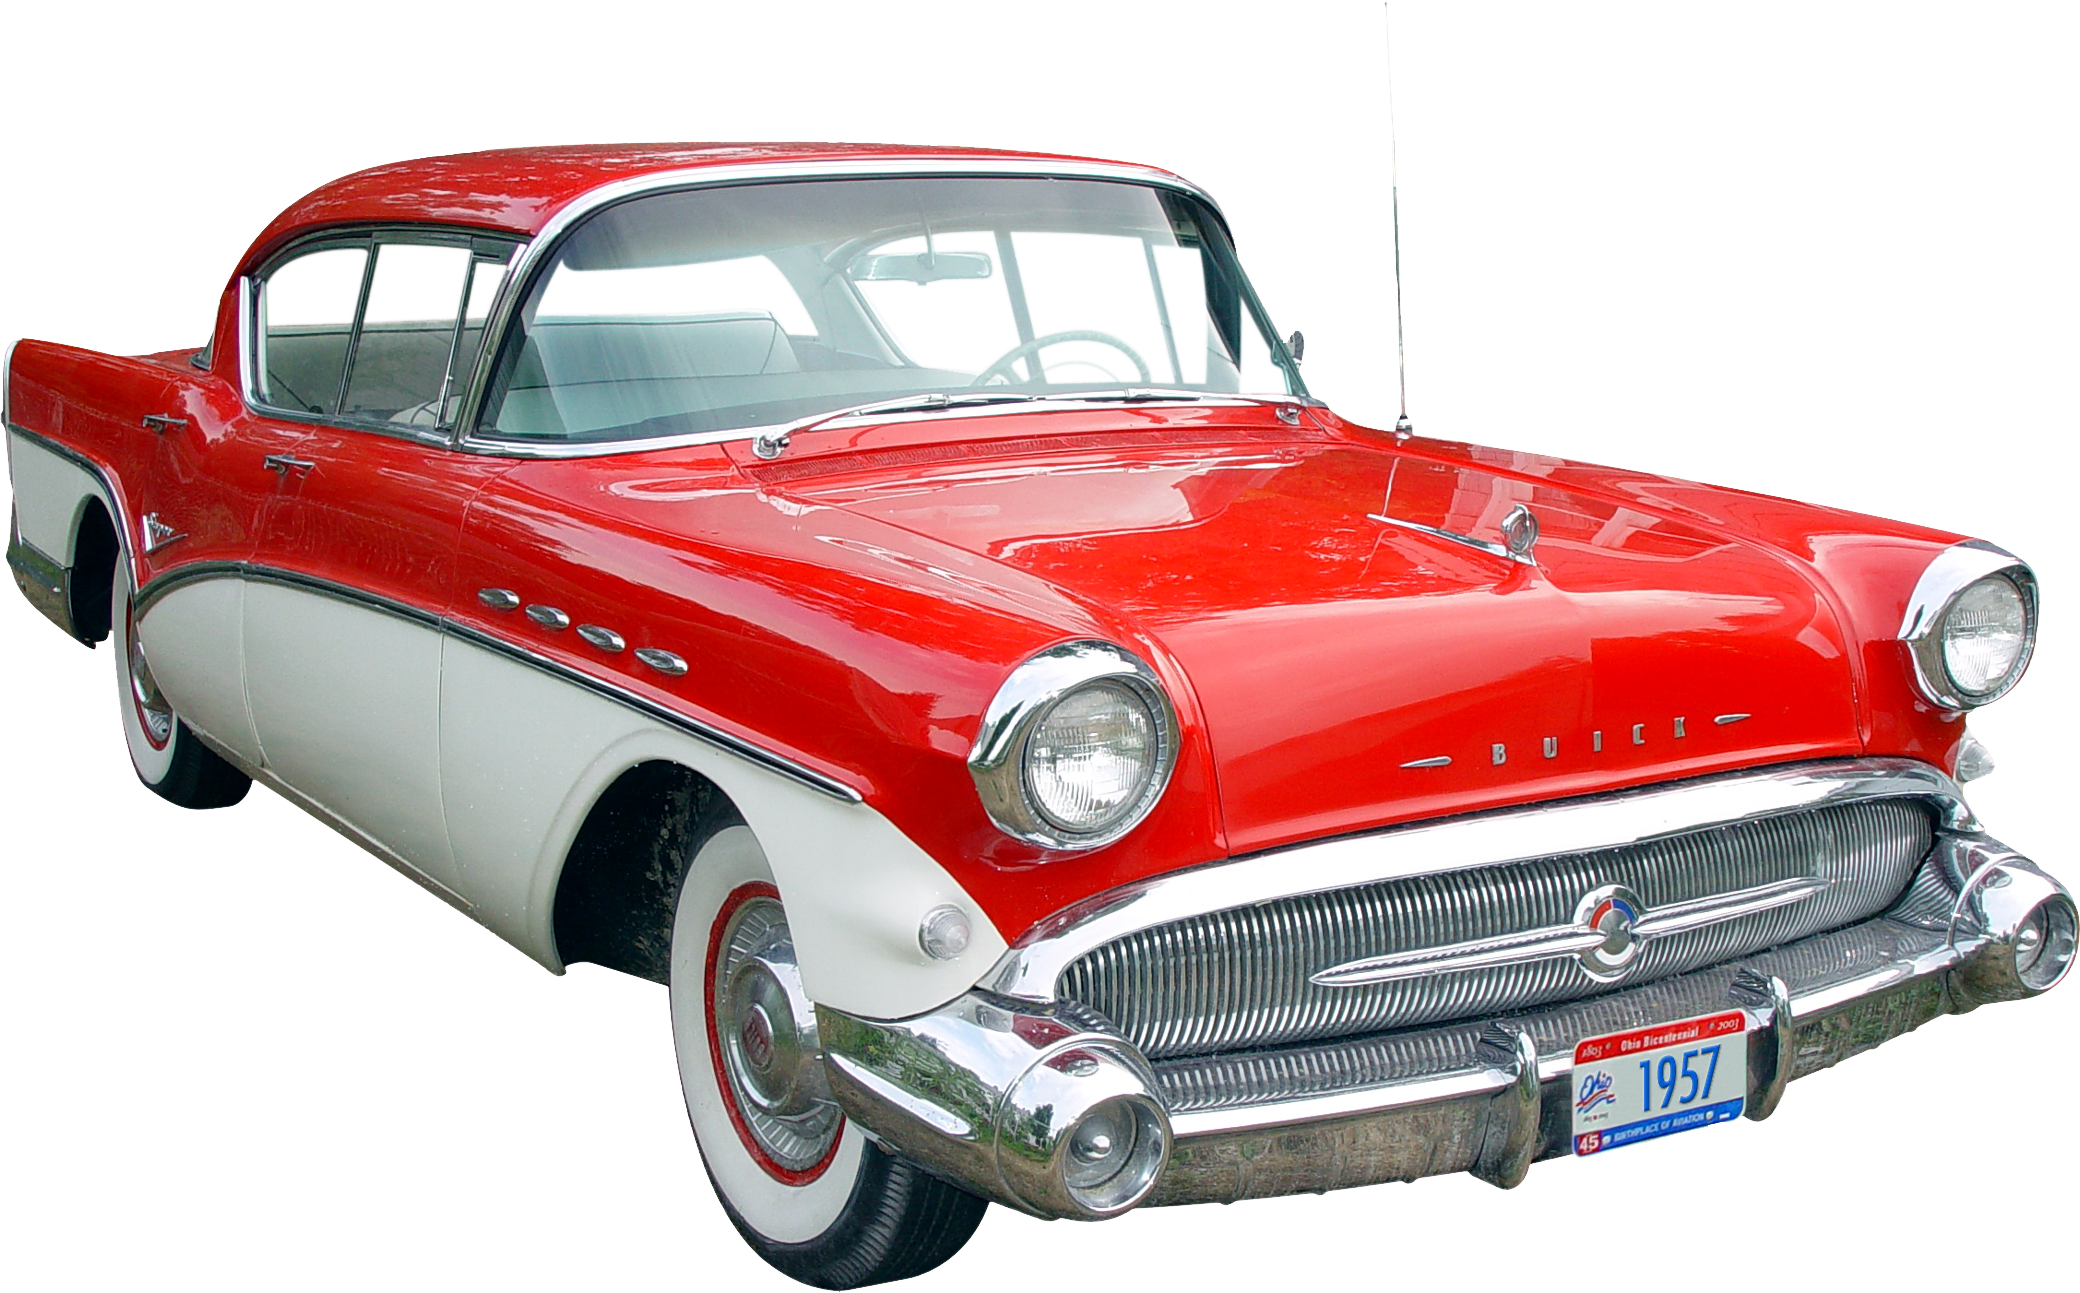 Red classic car clipart graphic black and white library Classic Car PNG Clipart | PNG Mart graphic black and white library